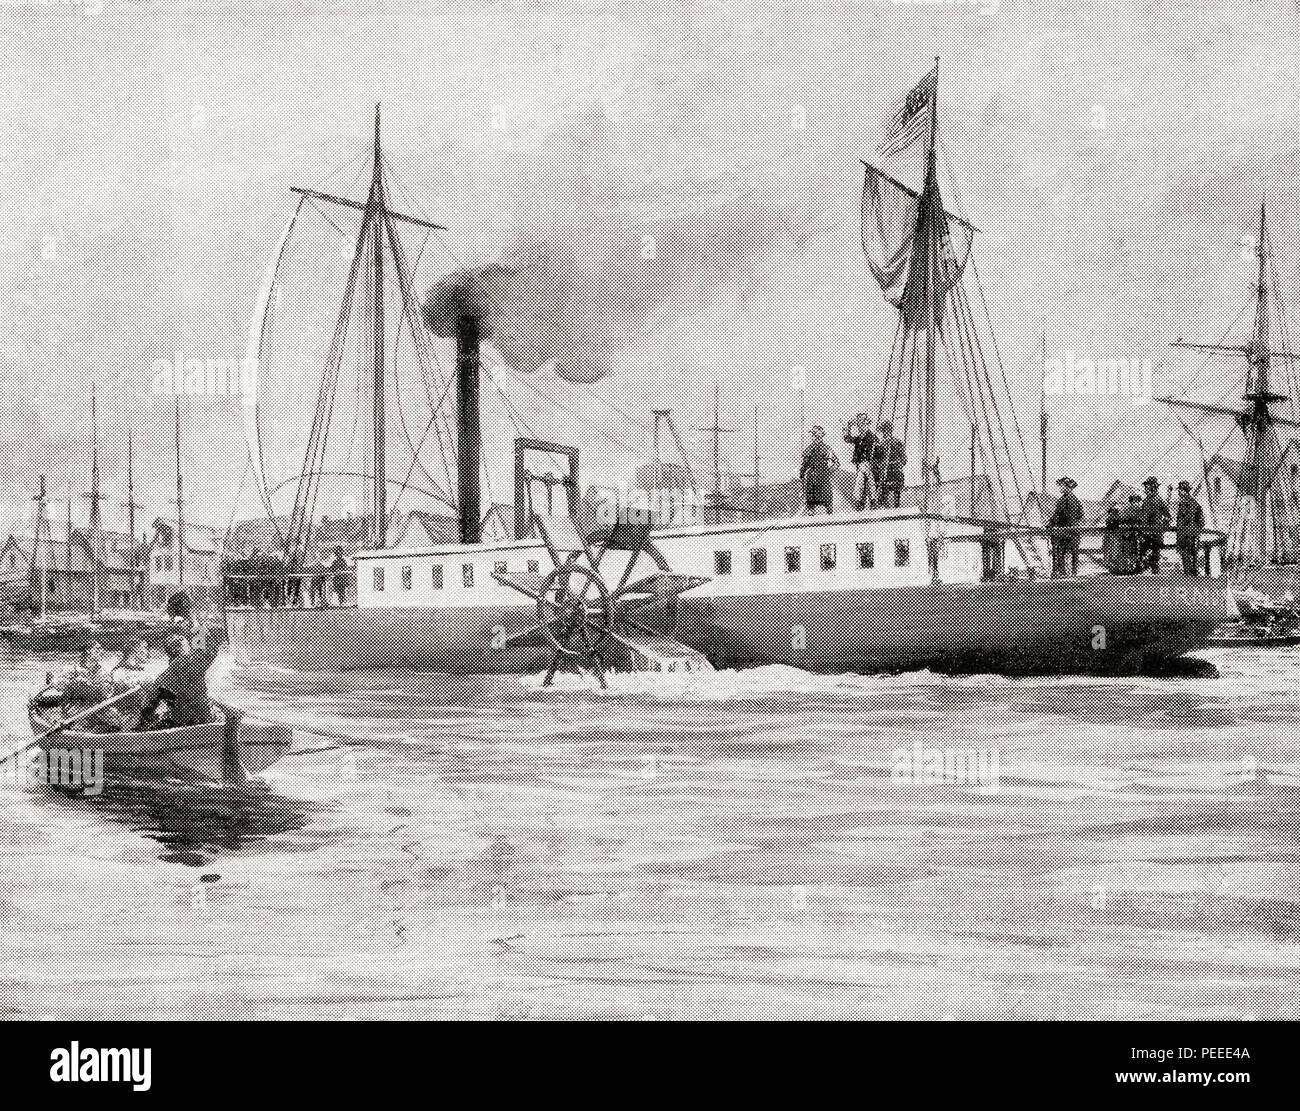 Robert Fulton's steam vessel The North River Steamboat or North River, aka The Clermont. She steamed 150 miles in 32 hours on her trial trip in 1807.  From The Book of Ships, published c.1920. - Stock Image